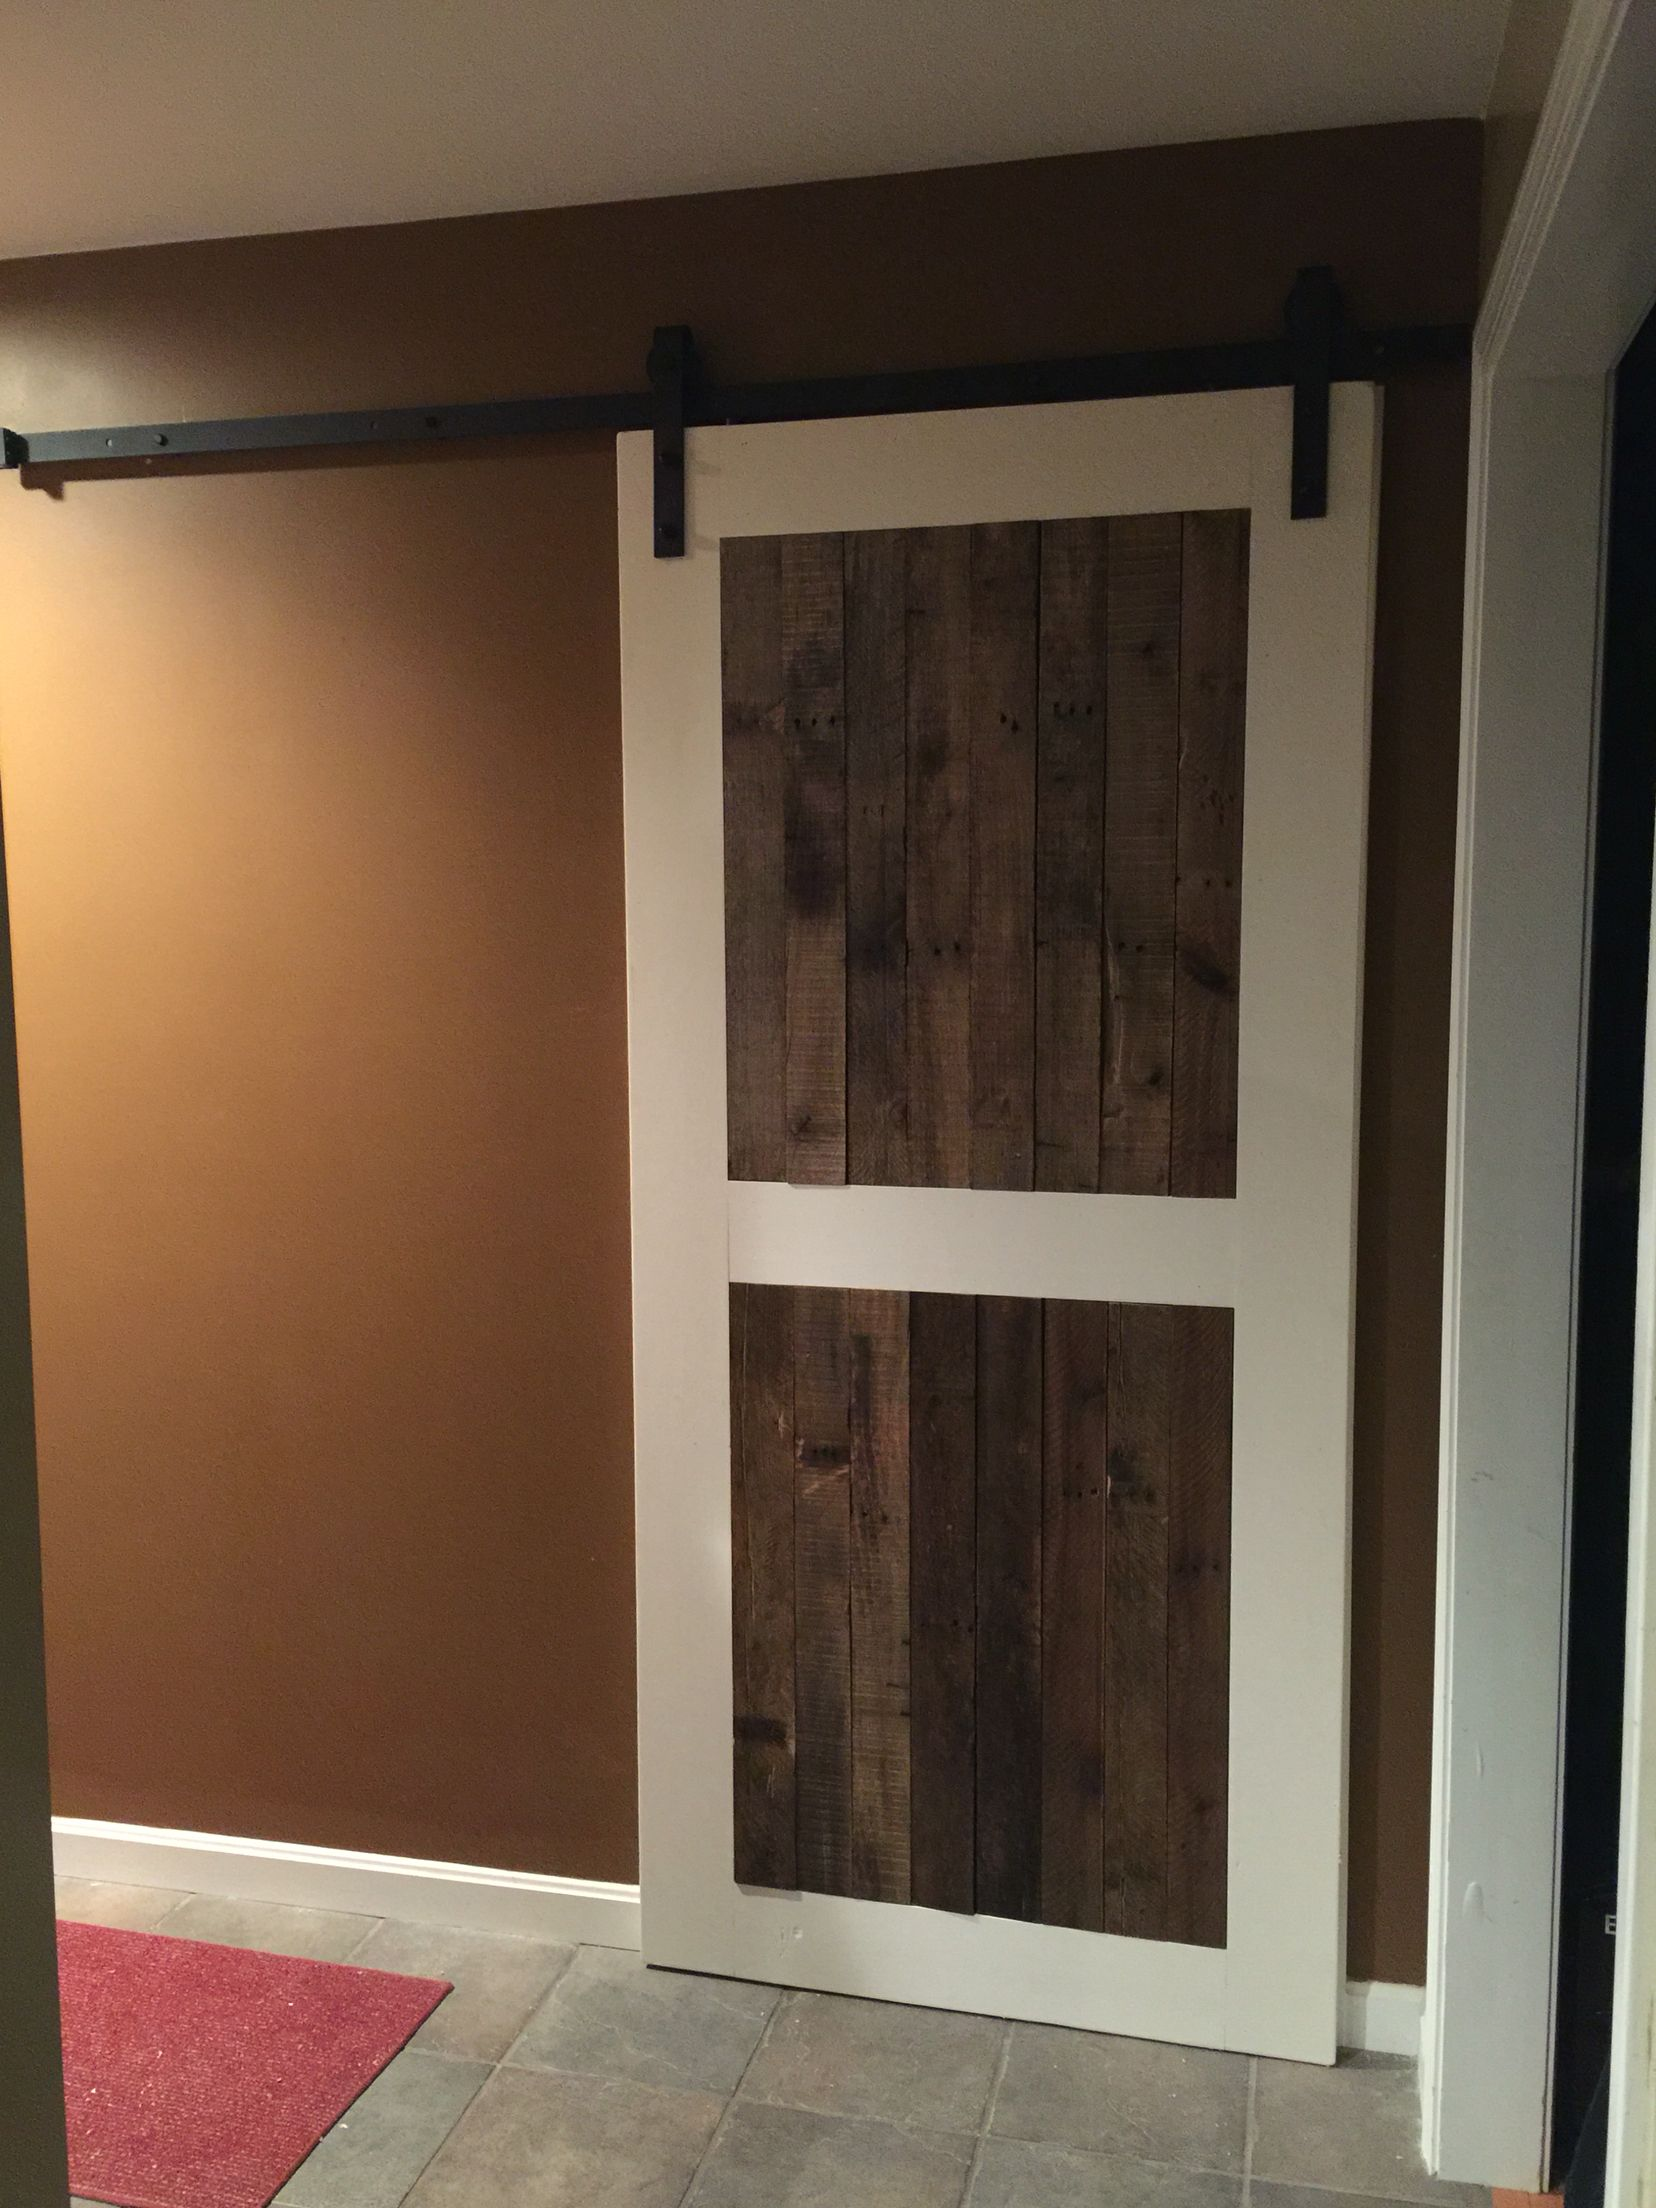 3 4 Oak Plywood Backing 1x6 Frame With Antique White Paint Pallet